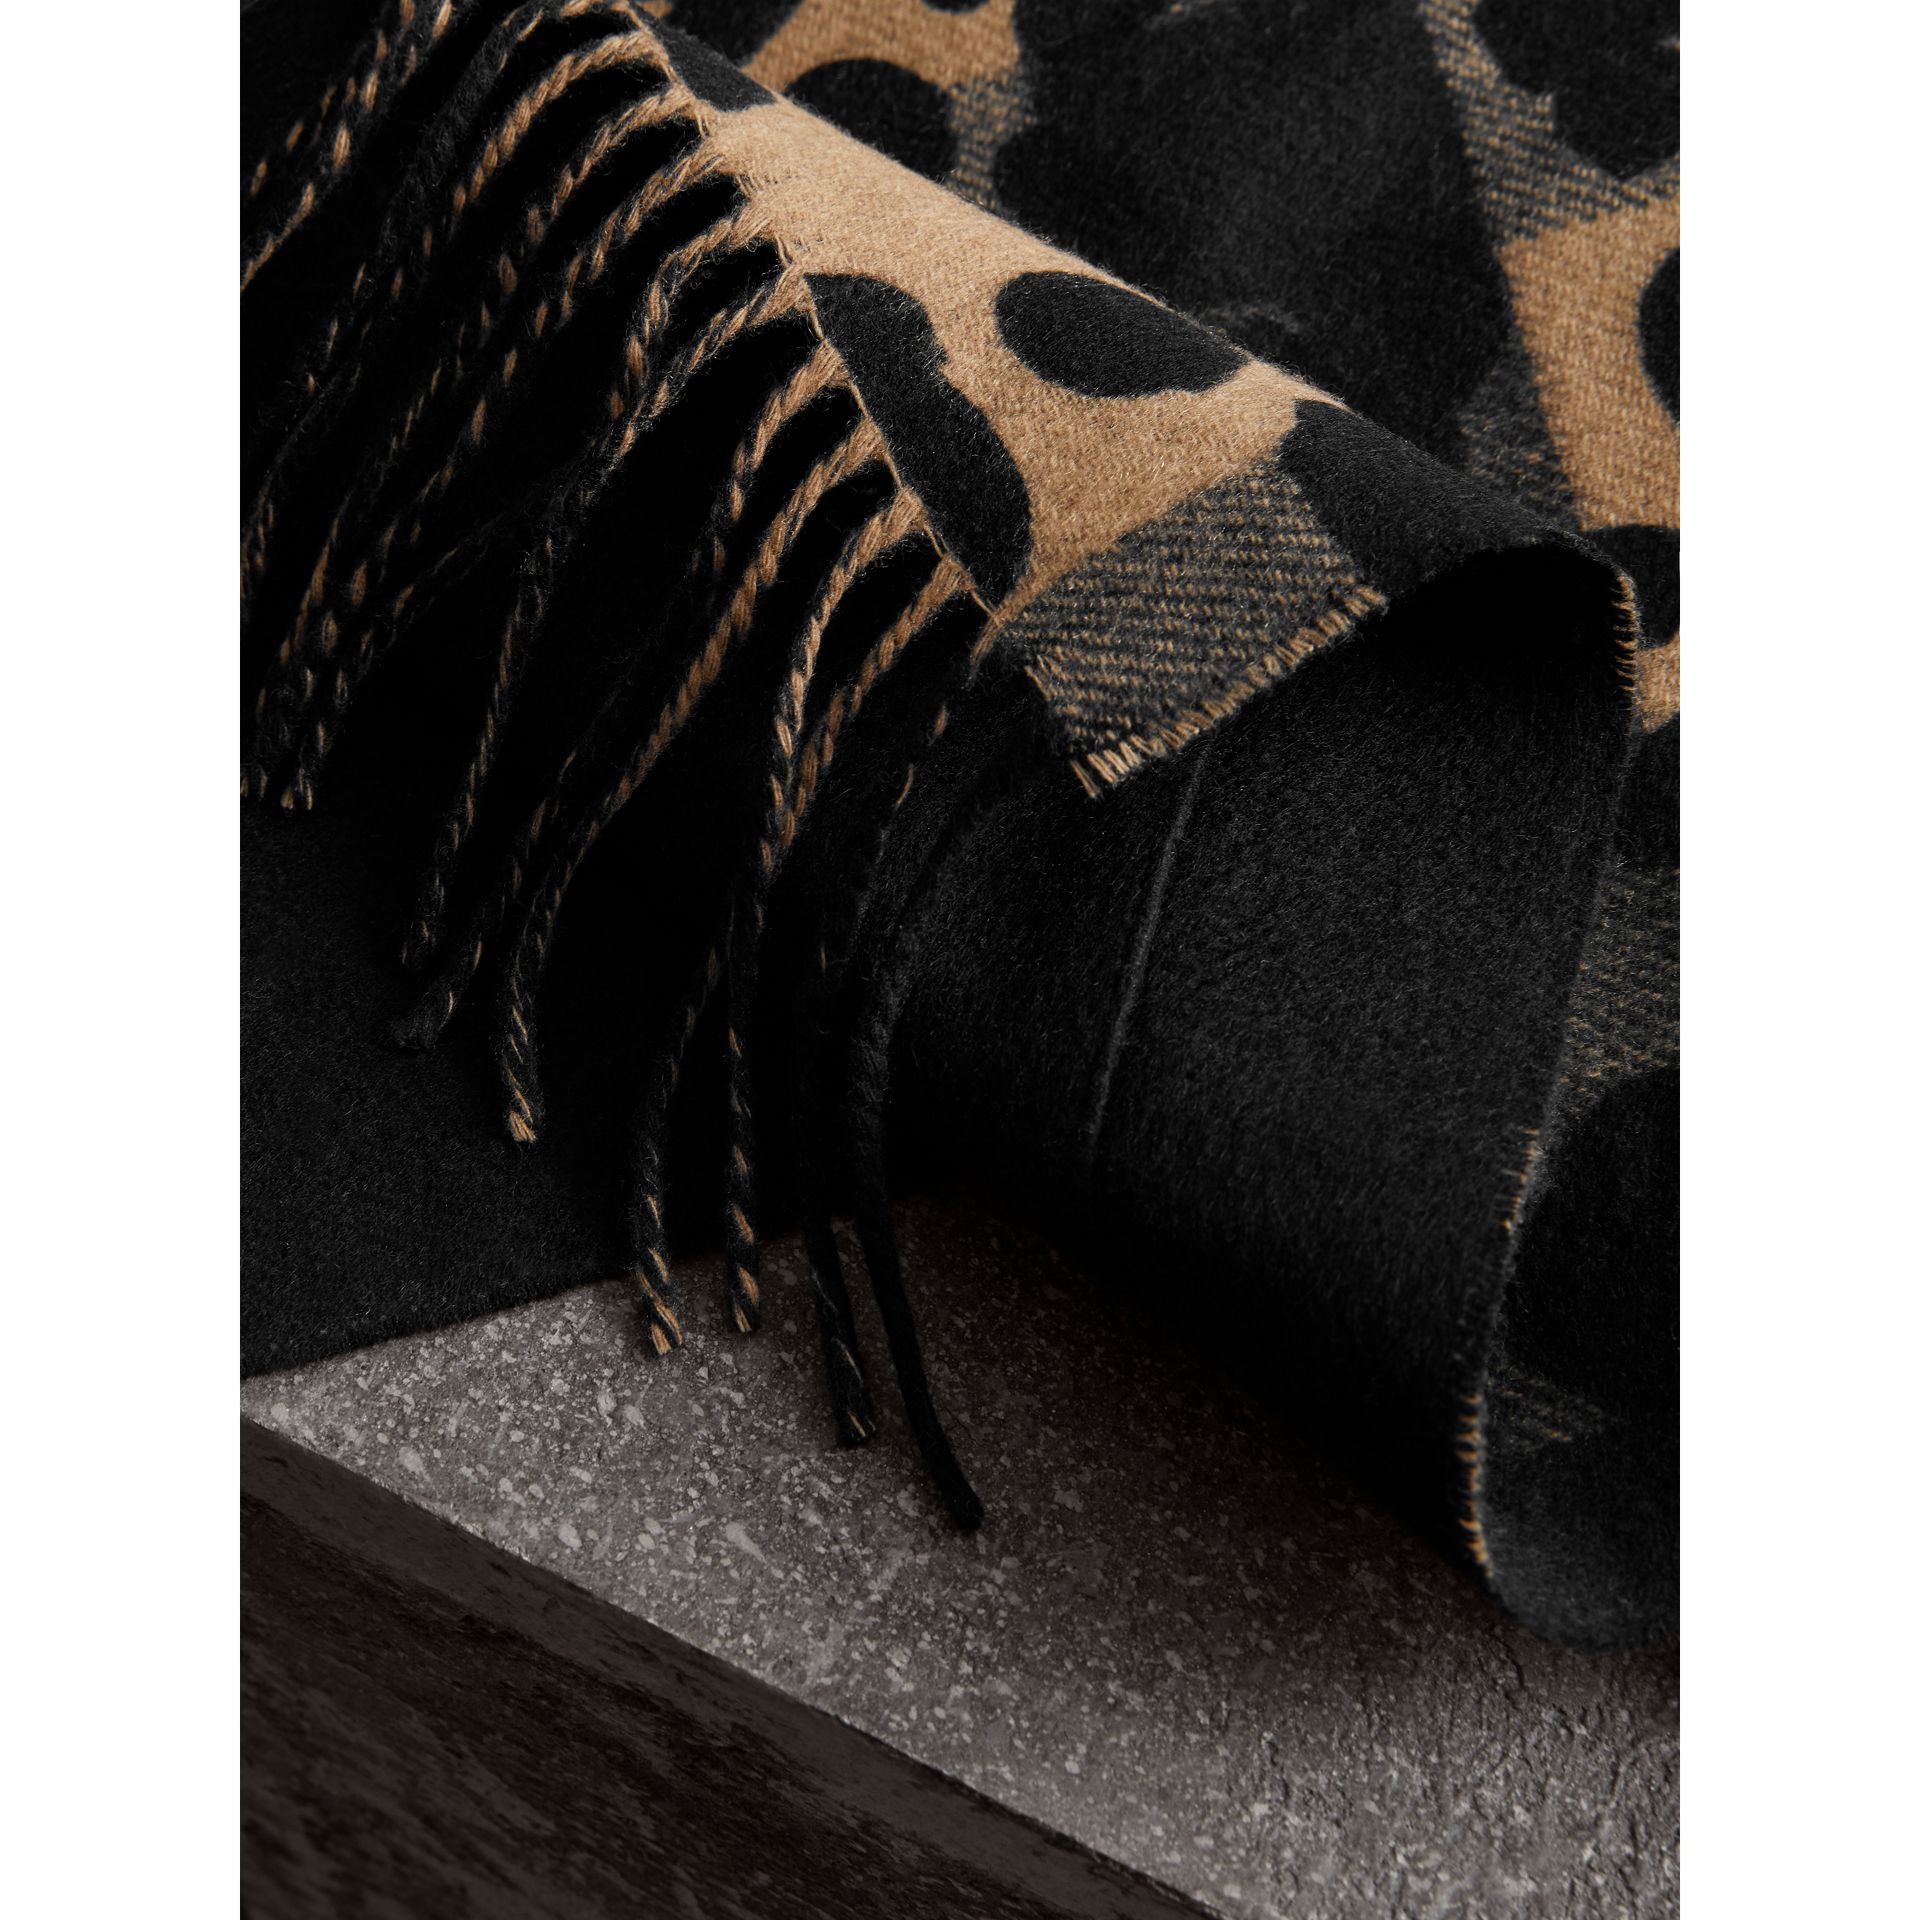 Animal Pattern Merino Wool Cashmere Stole in Camel - Women | Burberry Canada - gallery image 2